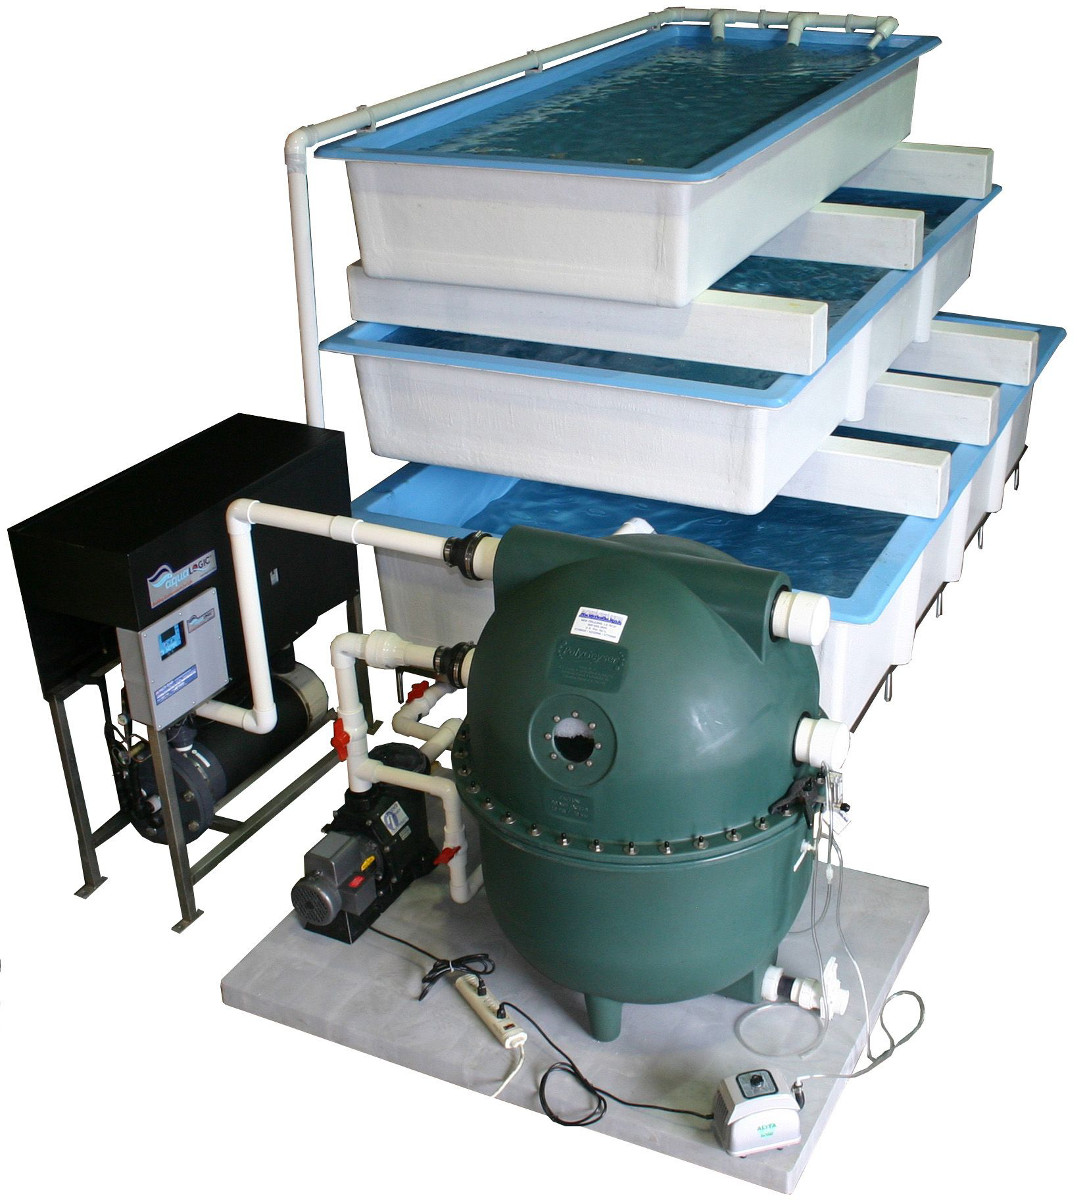 Live bait seafood lobster holding tanks filter systems for Fish tank filtration systems